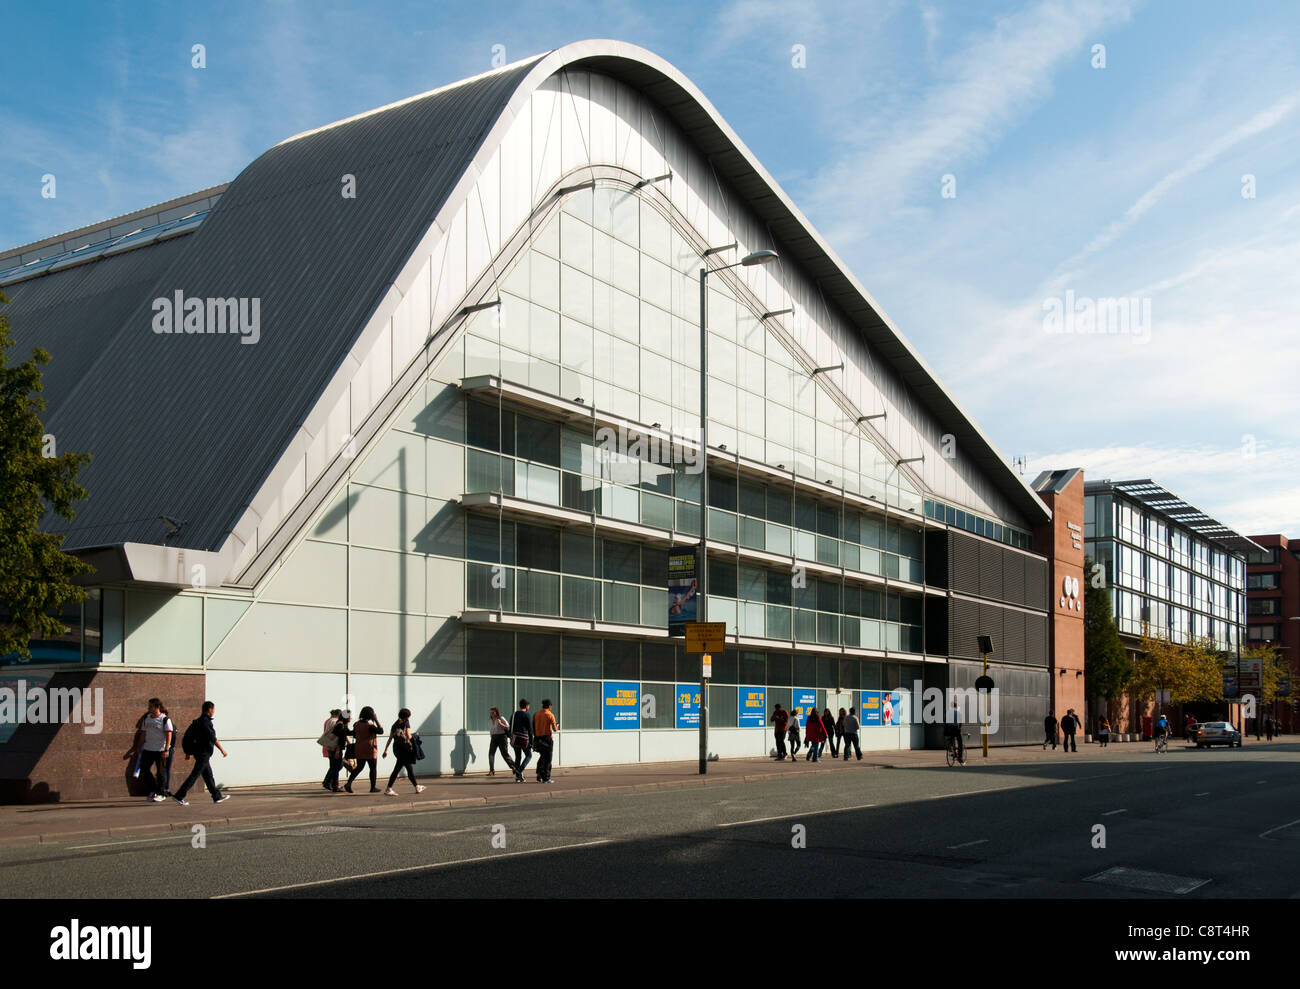 The Aquatics Centre, Faulkner Brown, 1997. Oxford Road, Manchester, England, UK.  Built for the 2002 Commonwealth - Stock Image